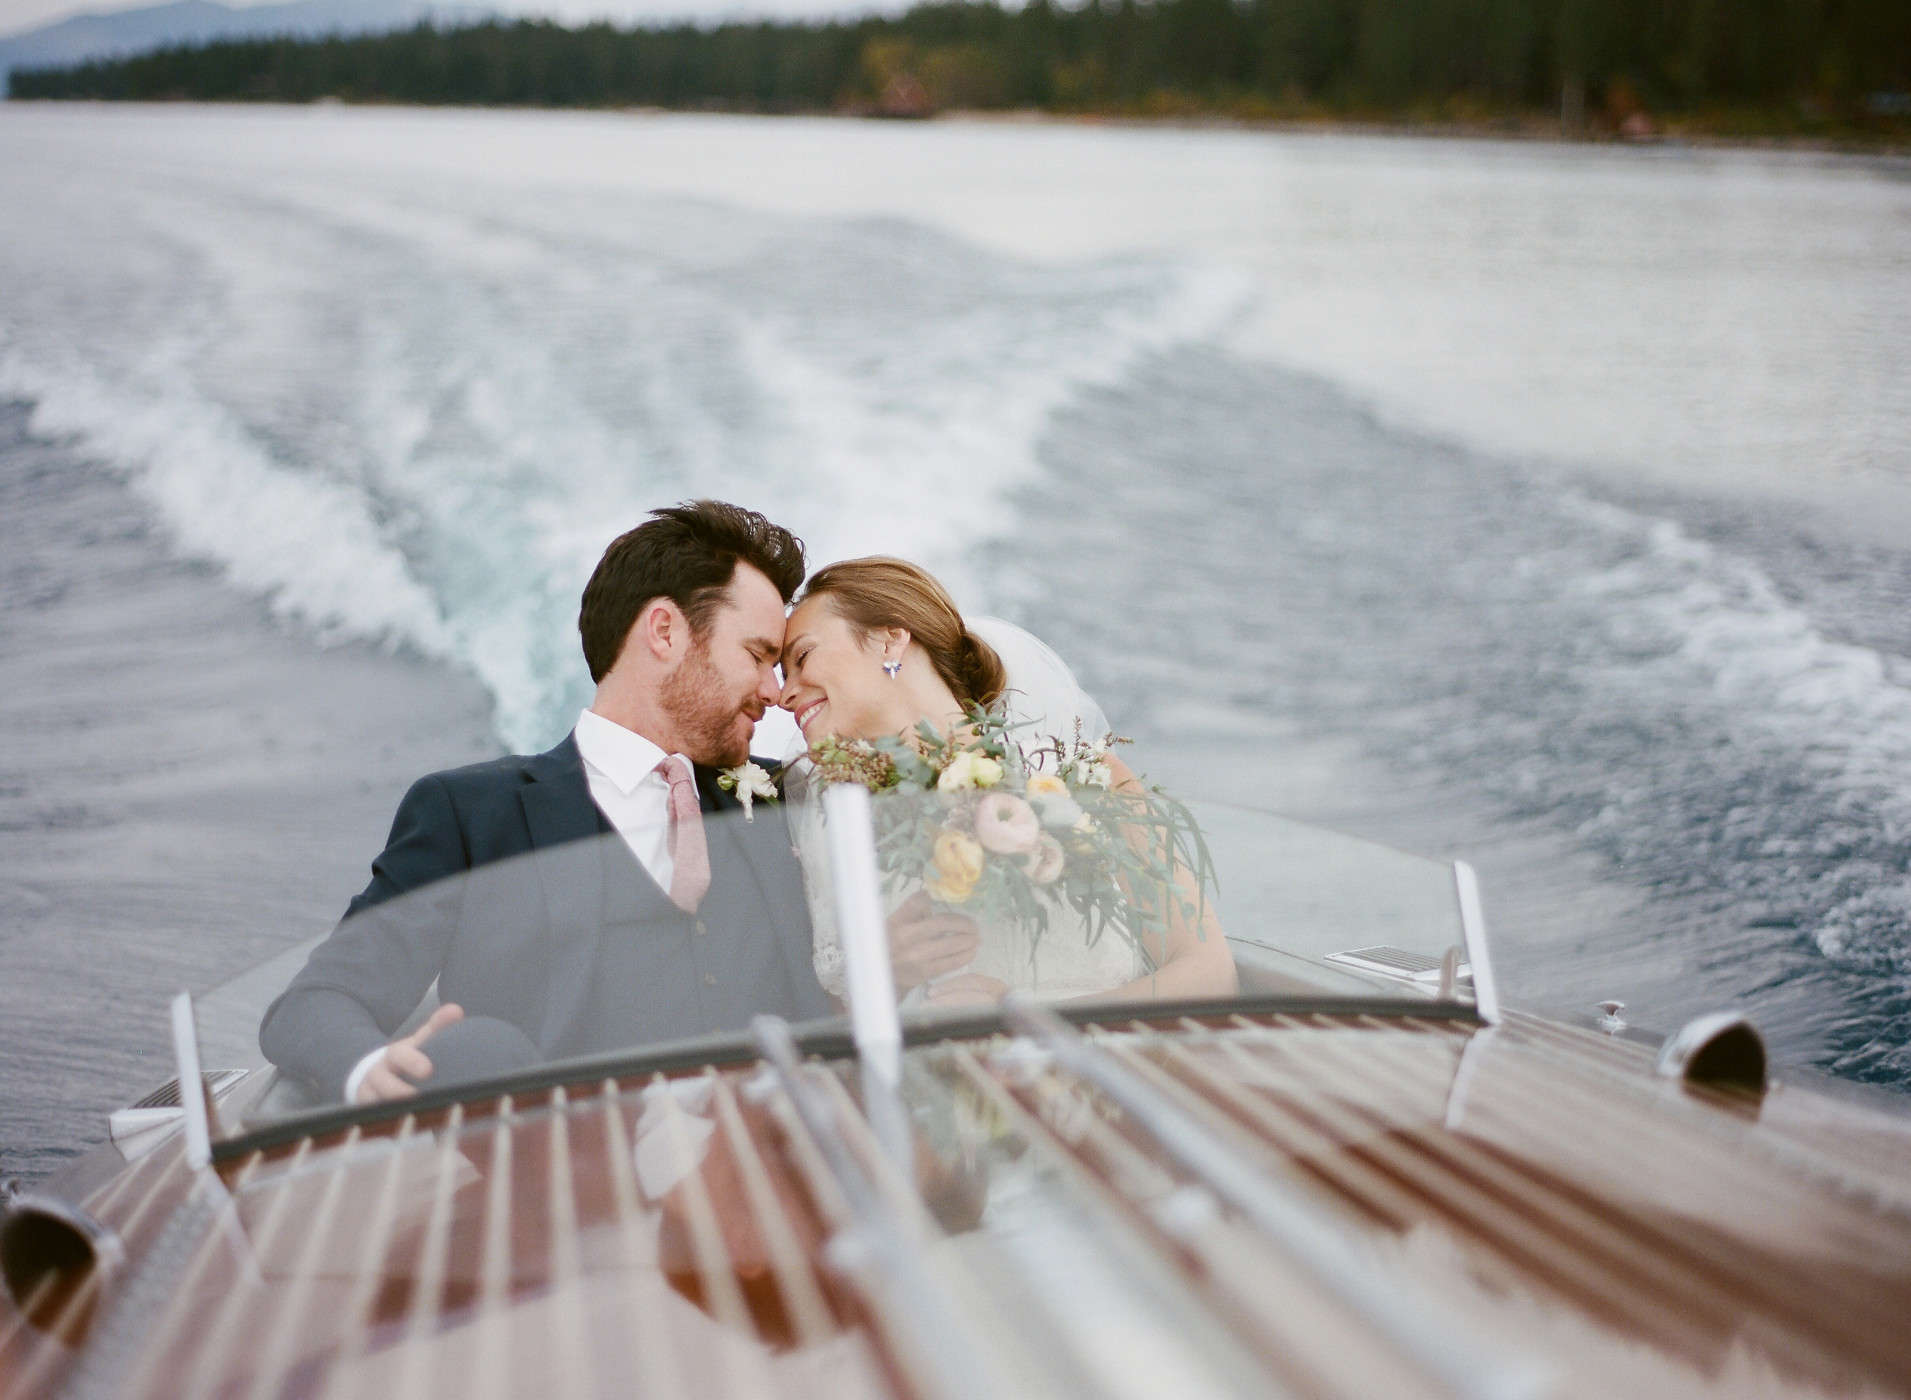 Melina Wallisch Photography // Destination Fine Art Wedding Photographer